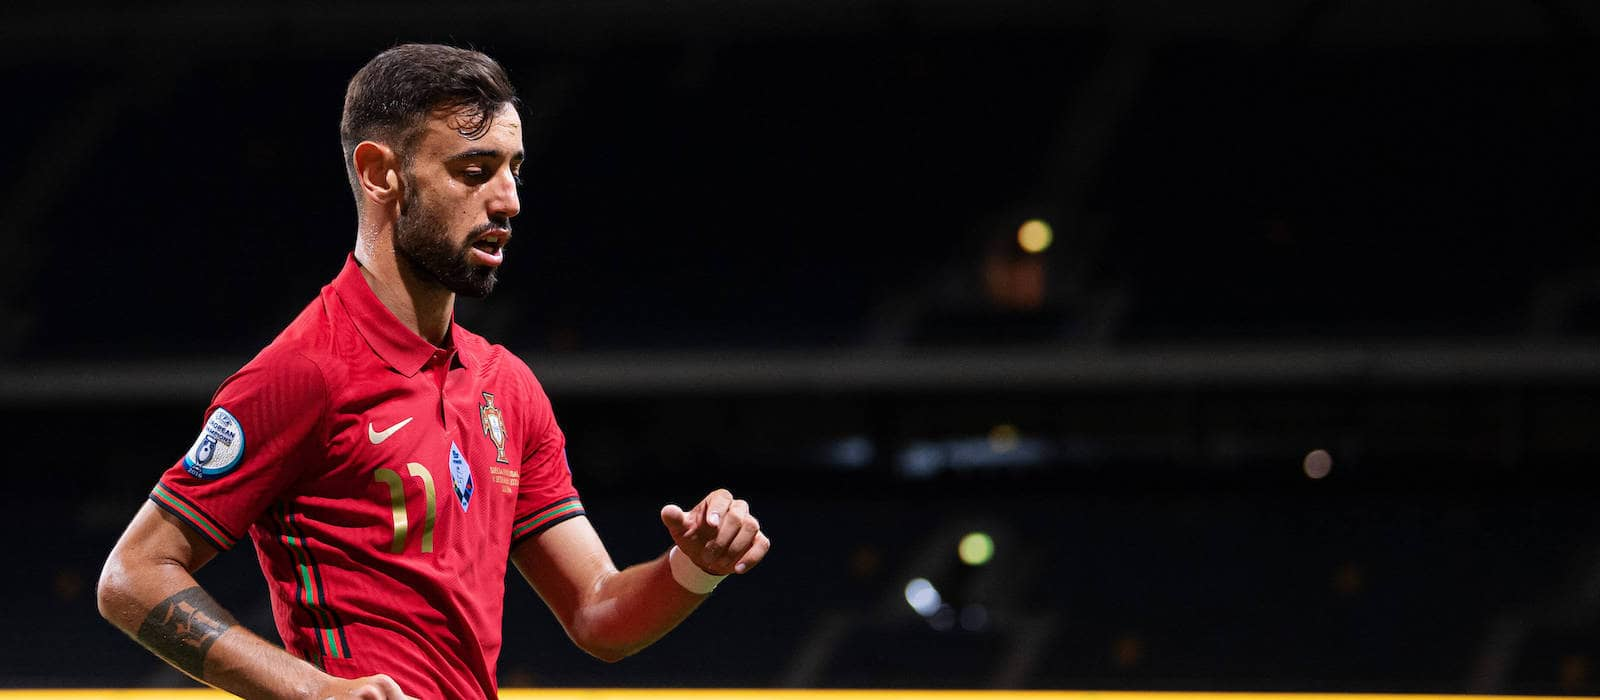 Fans delighted by Bruno Fernandes' response to accusations